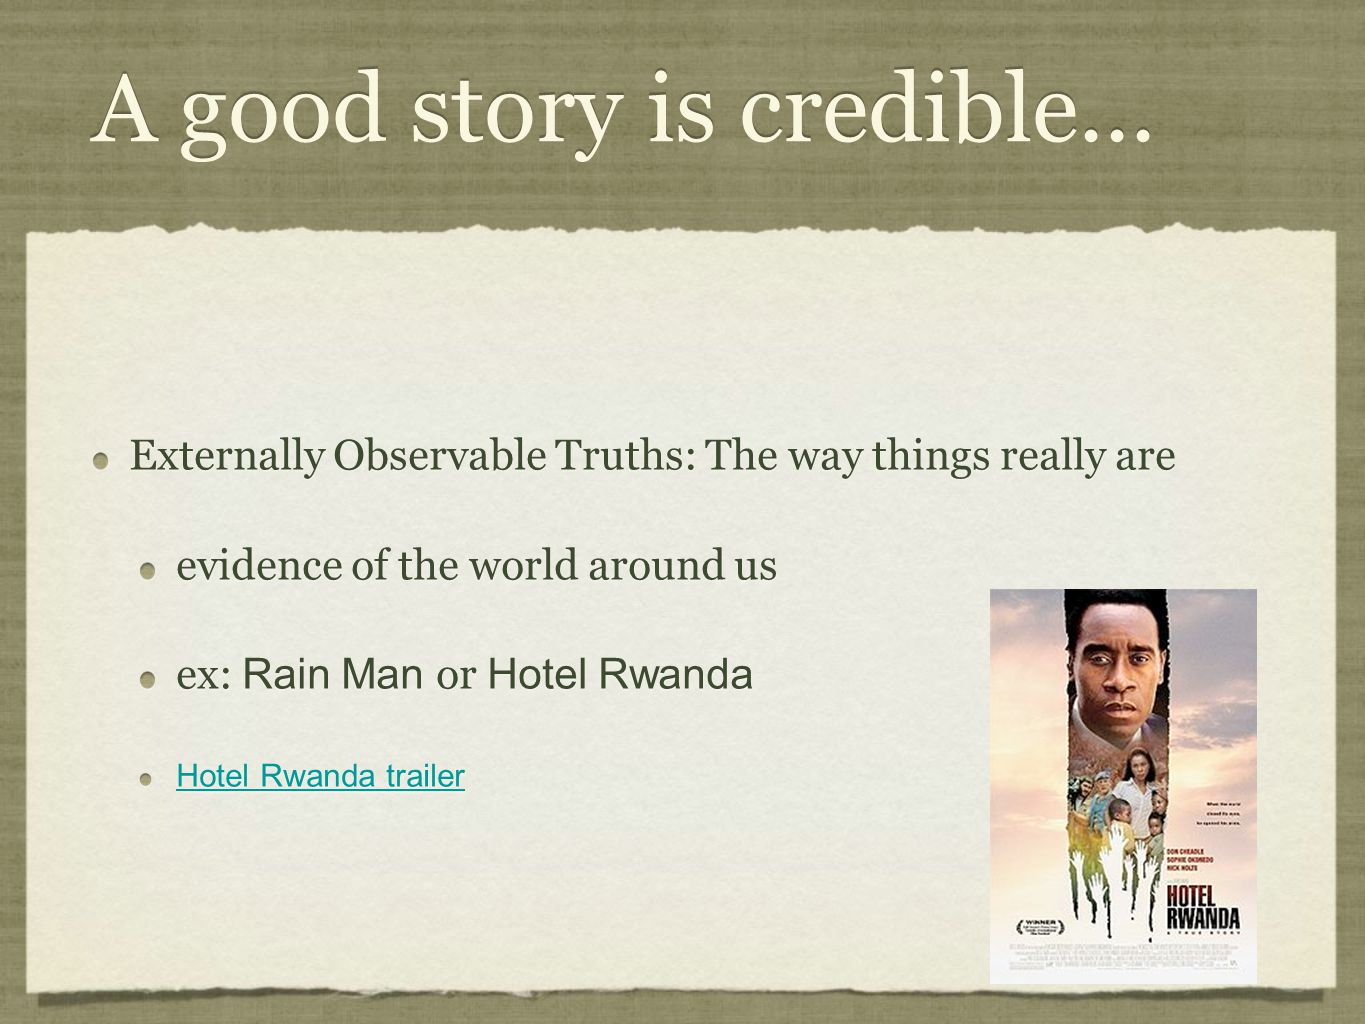 A good story is credible...